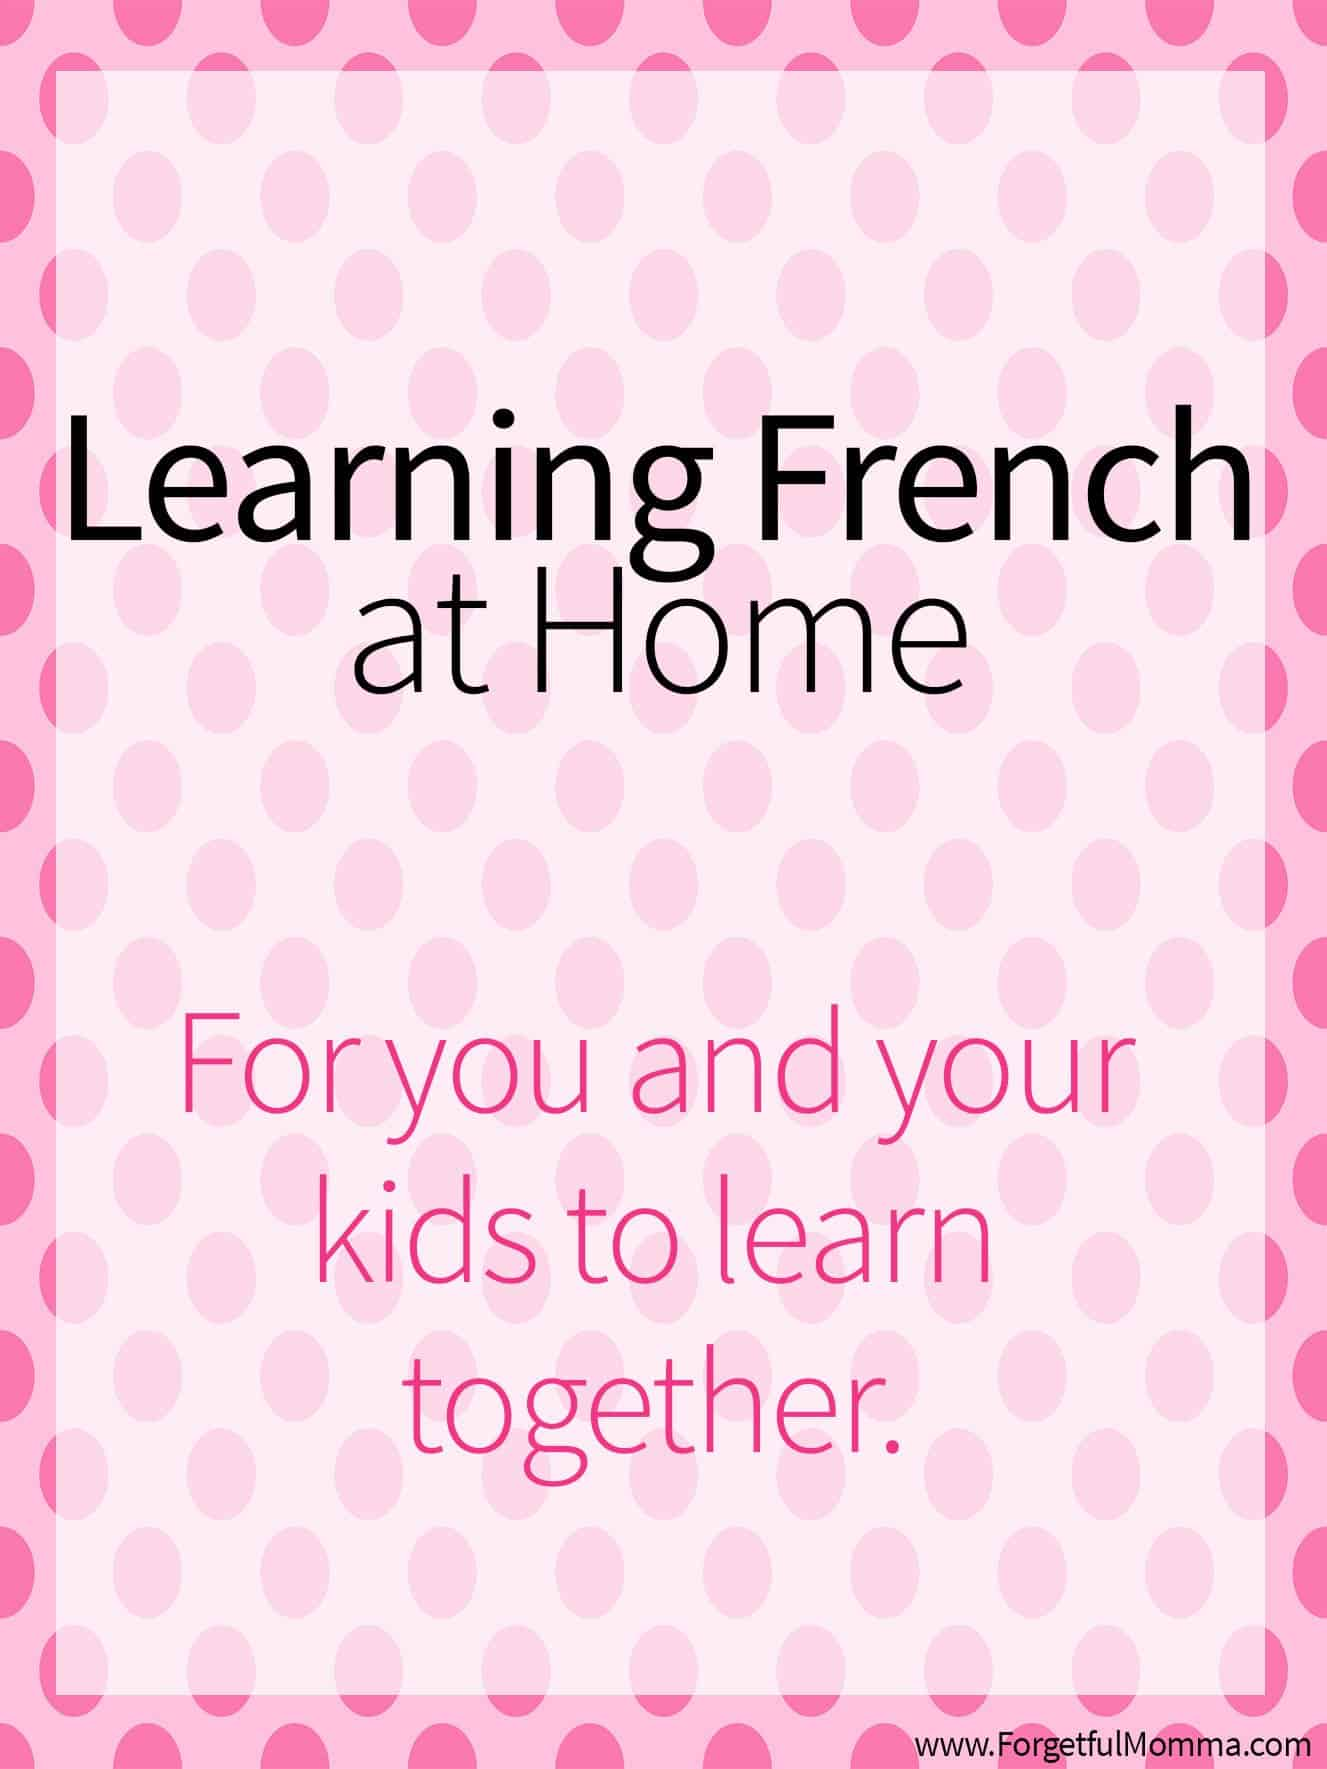 Learning French at Home